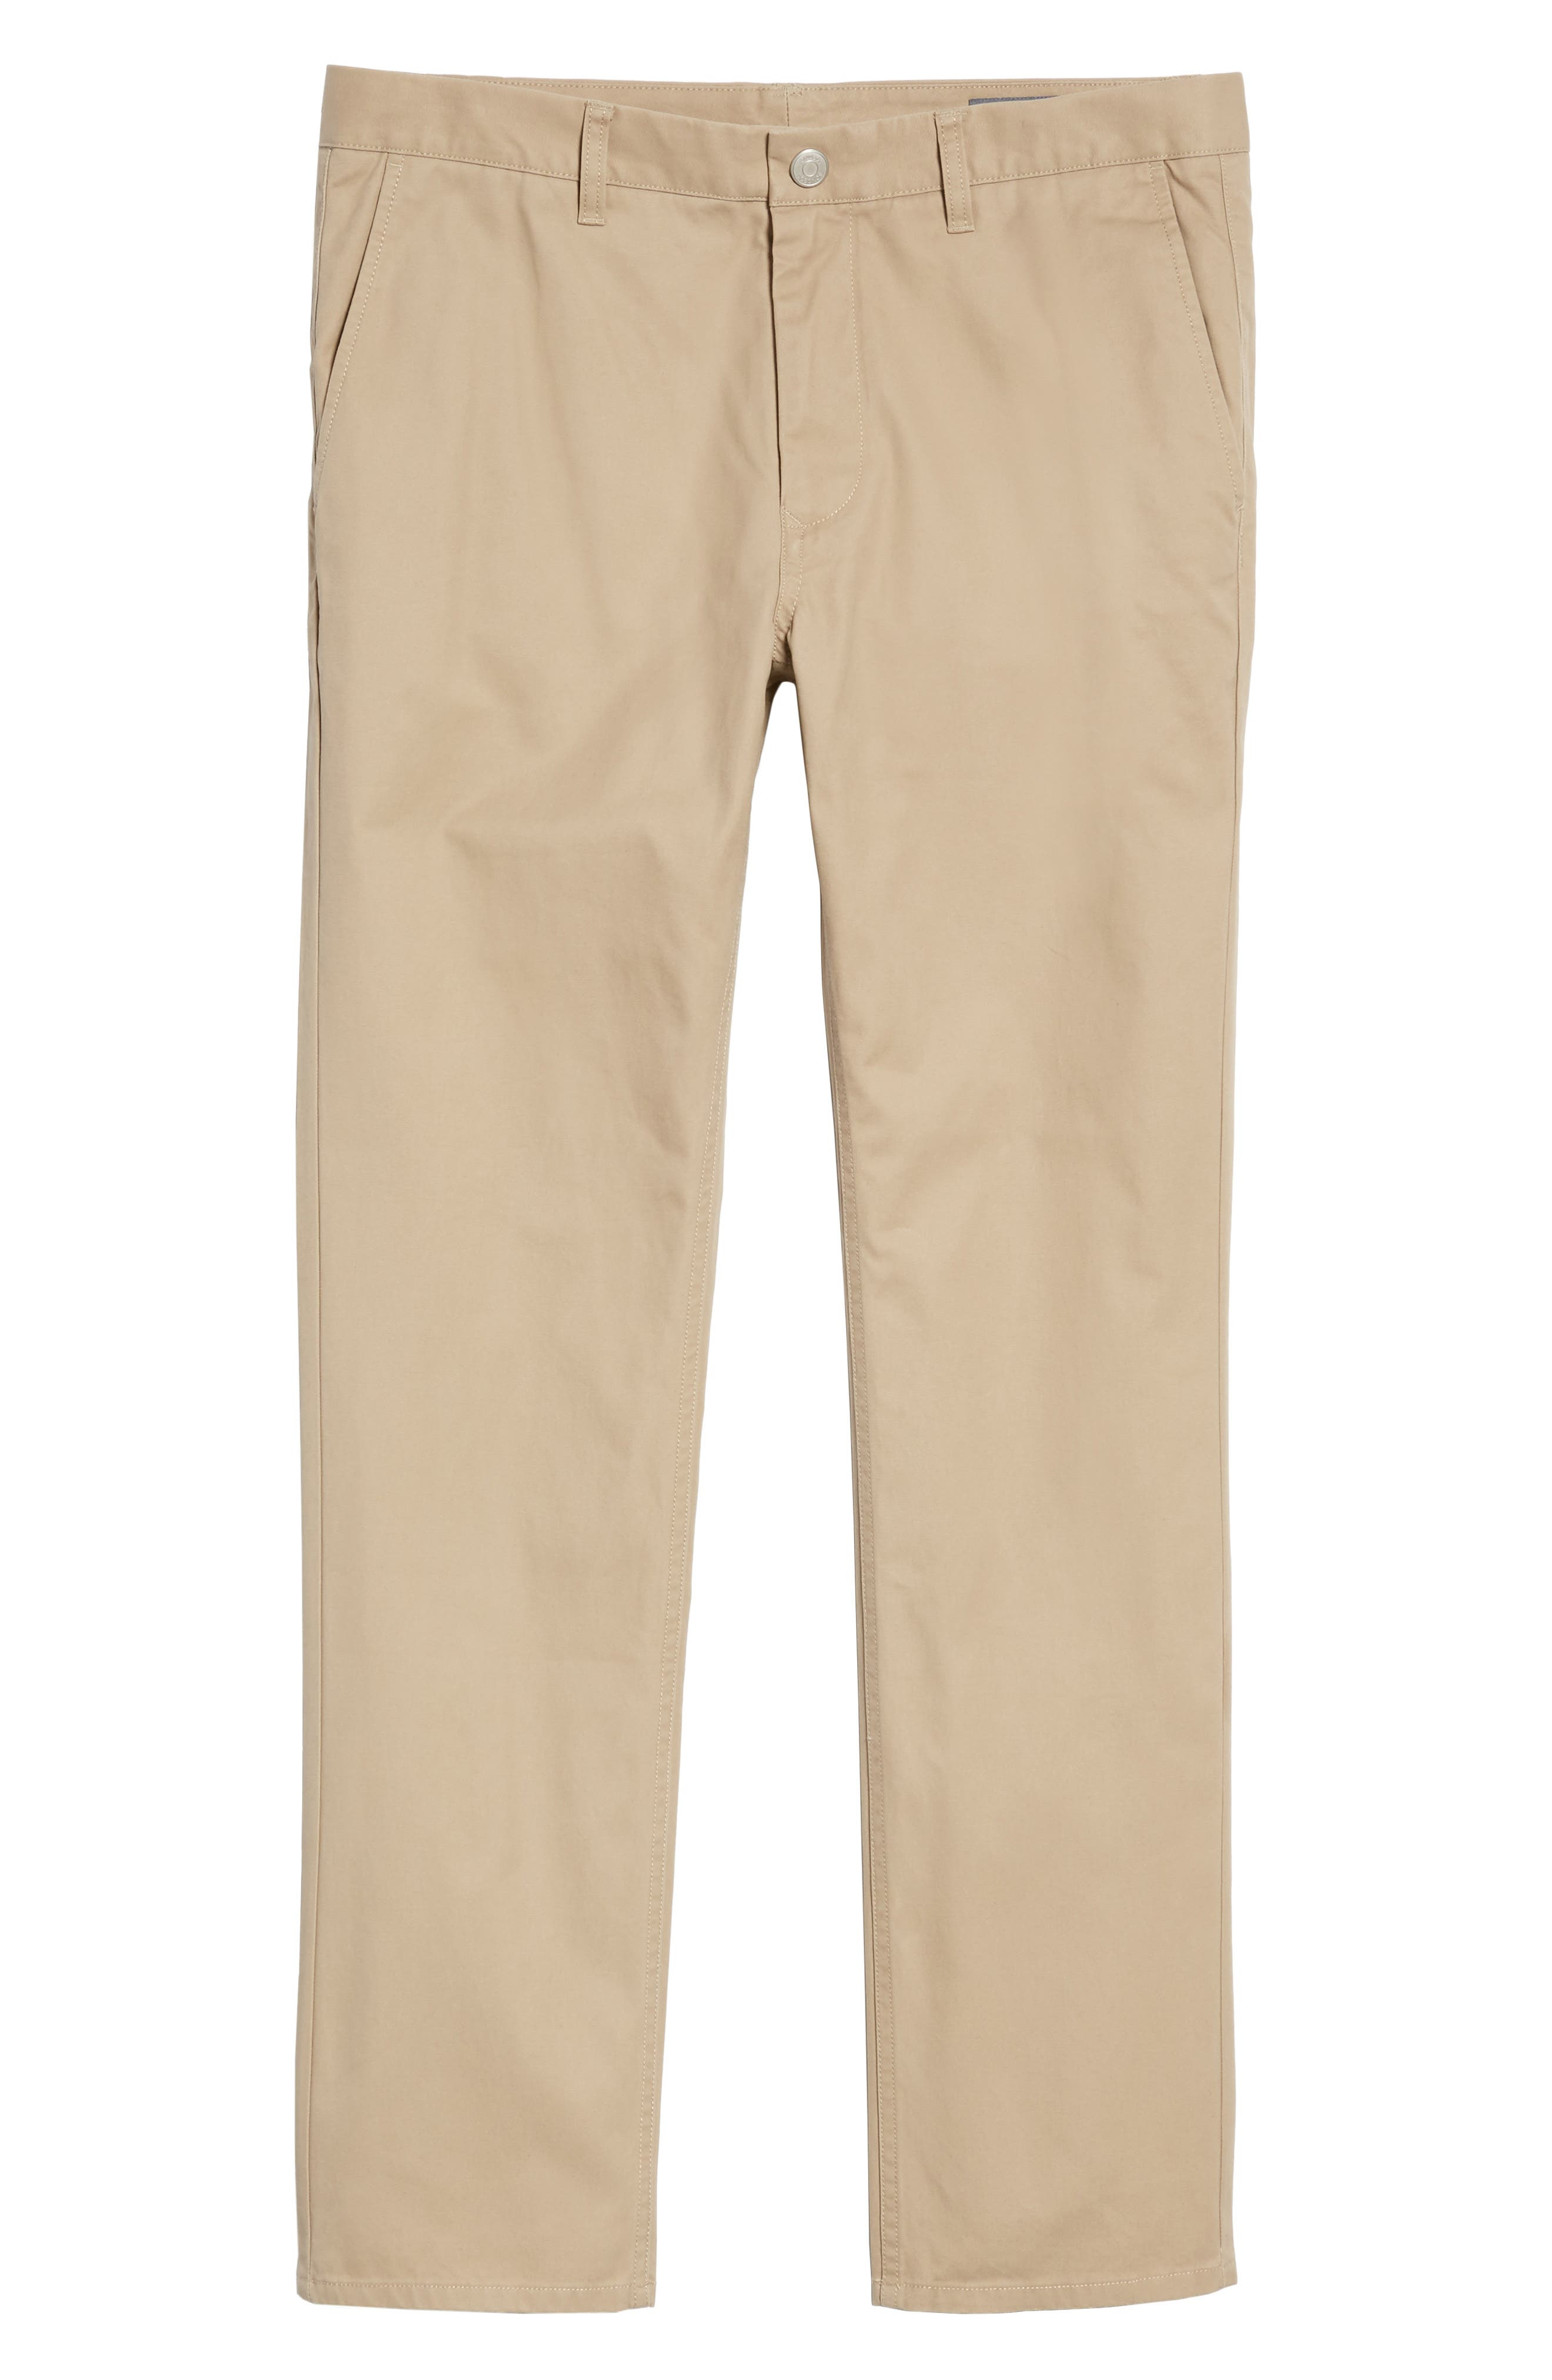 Tailored Fit Washed Chinos,                             Alternate thumbnail 2, color,                             250